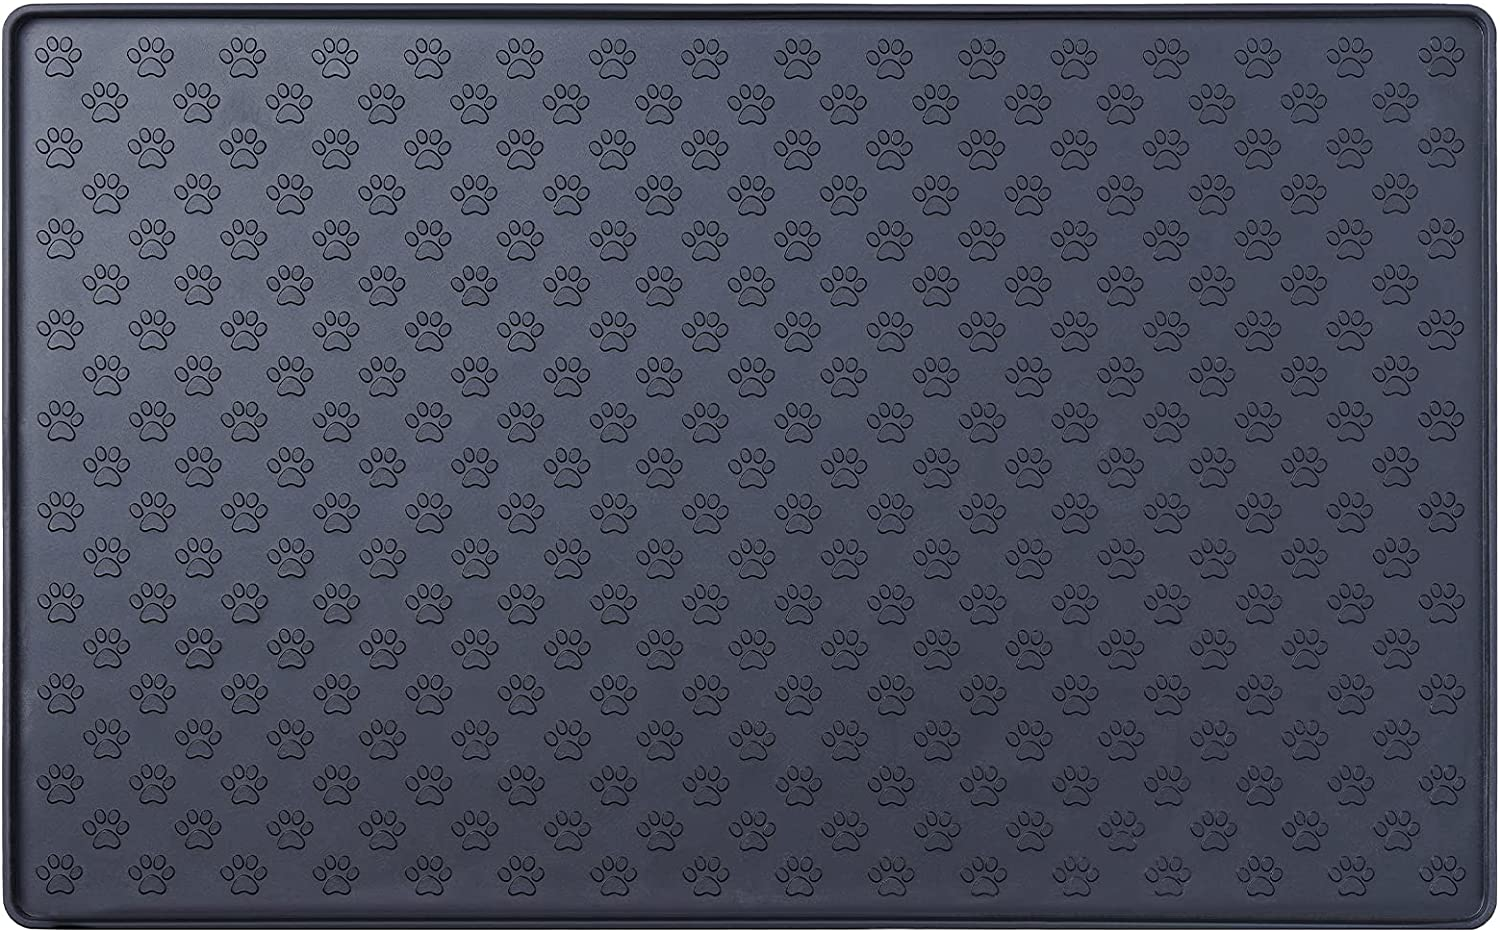 IMHAPO Silicone Dog Food Mat, Waterproof Pet Feeding Mat with Raised Edges, Nonslip Dog Bowl Mat for Floor, Washable, Easy to Clean, Dog Paw Printed, Suitable for Small, Medium and Large Pet